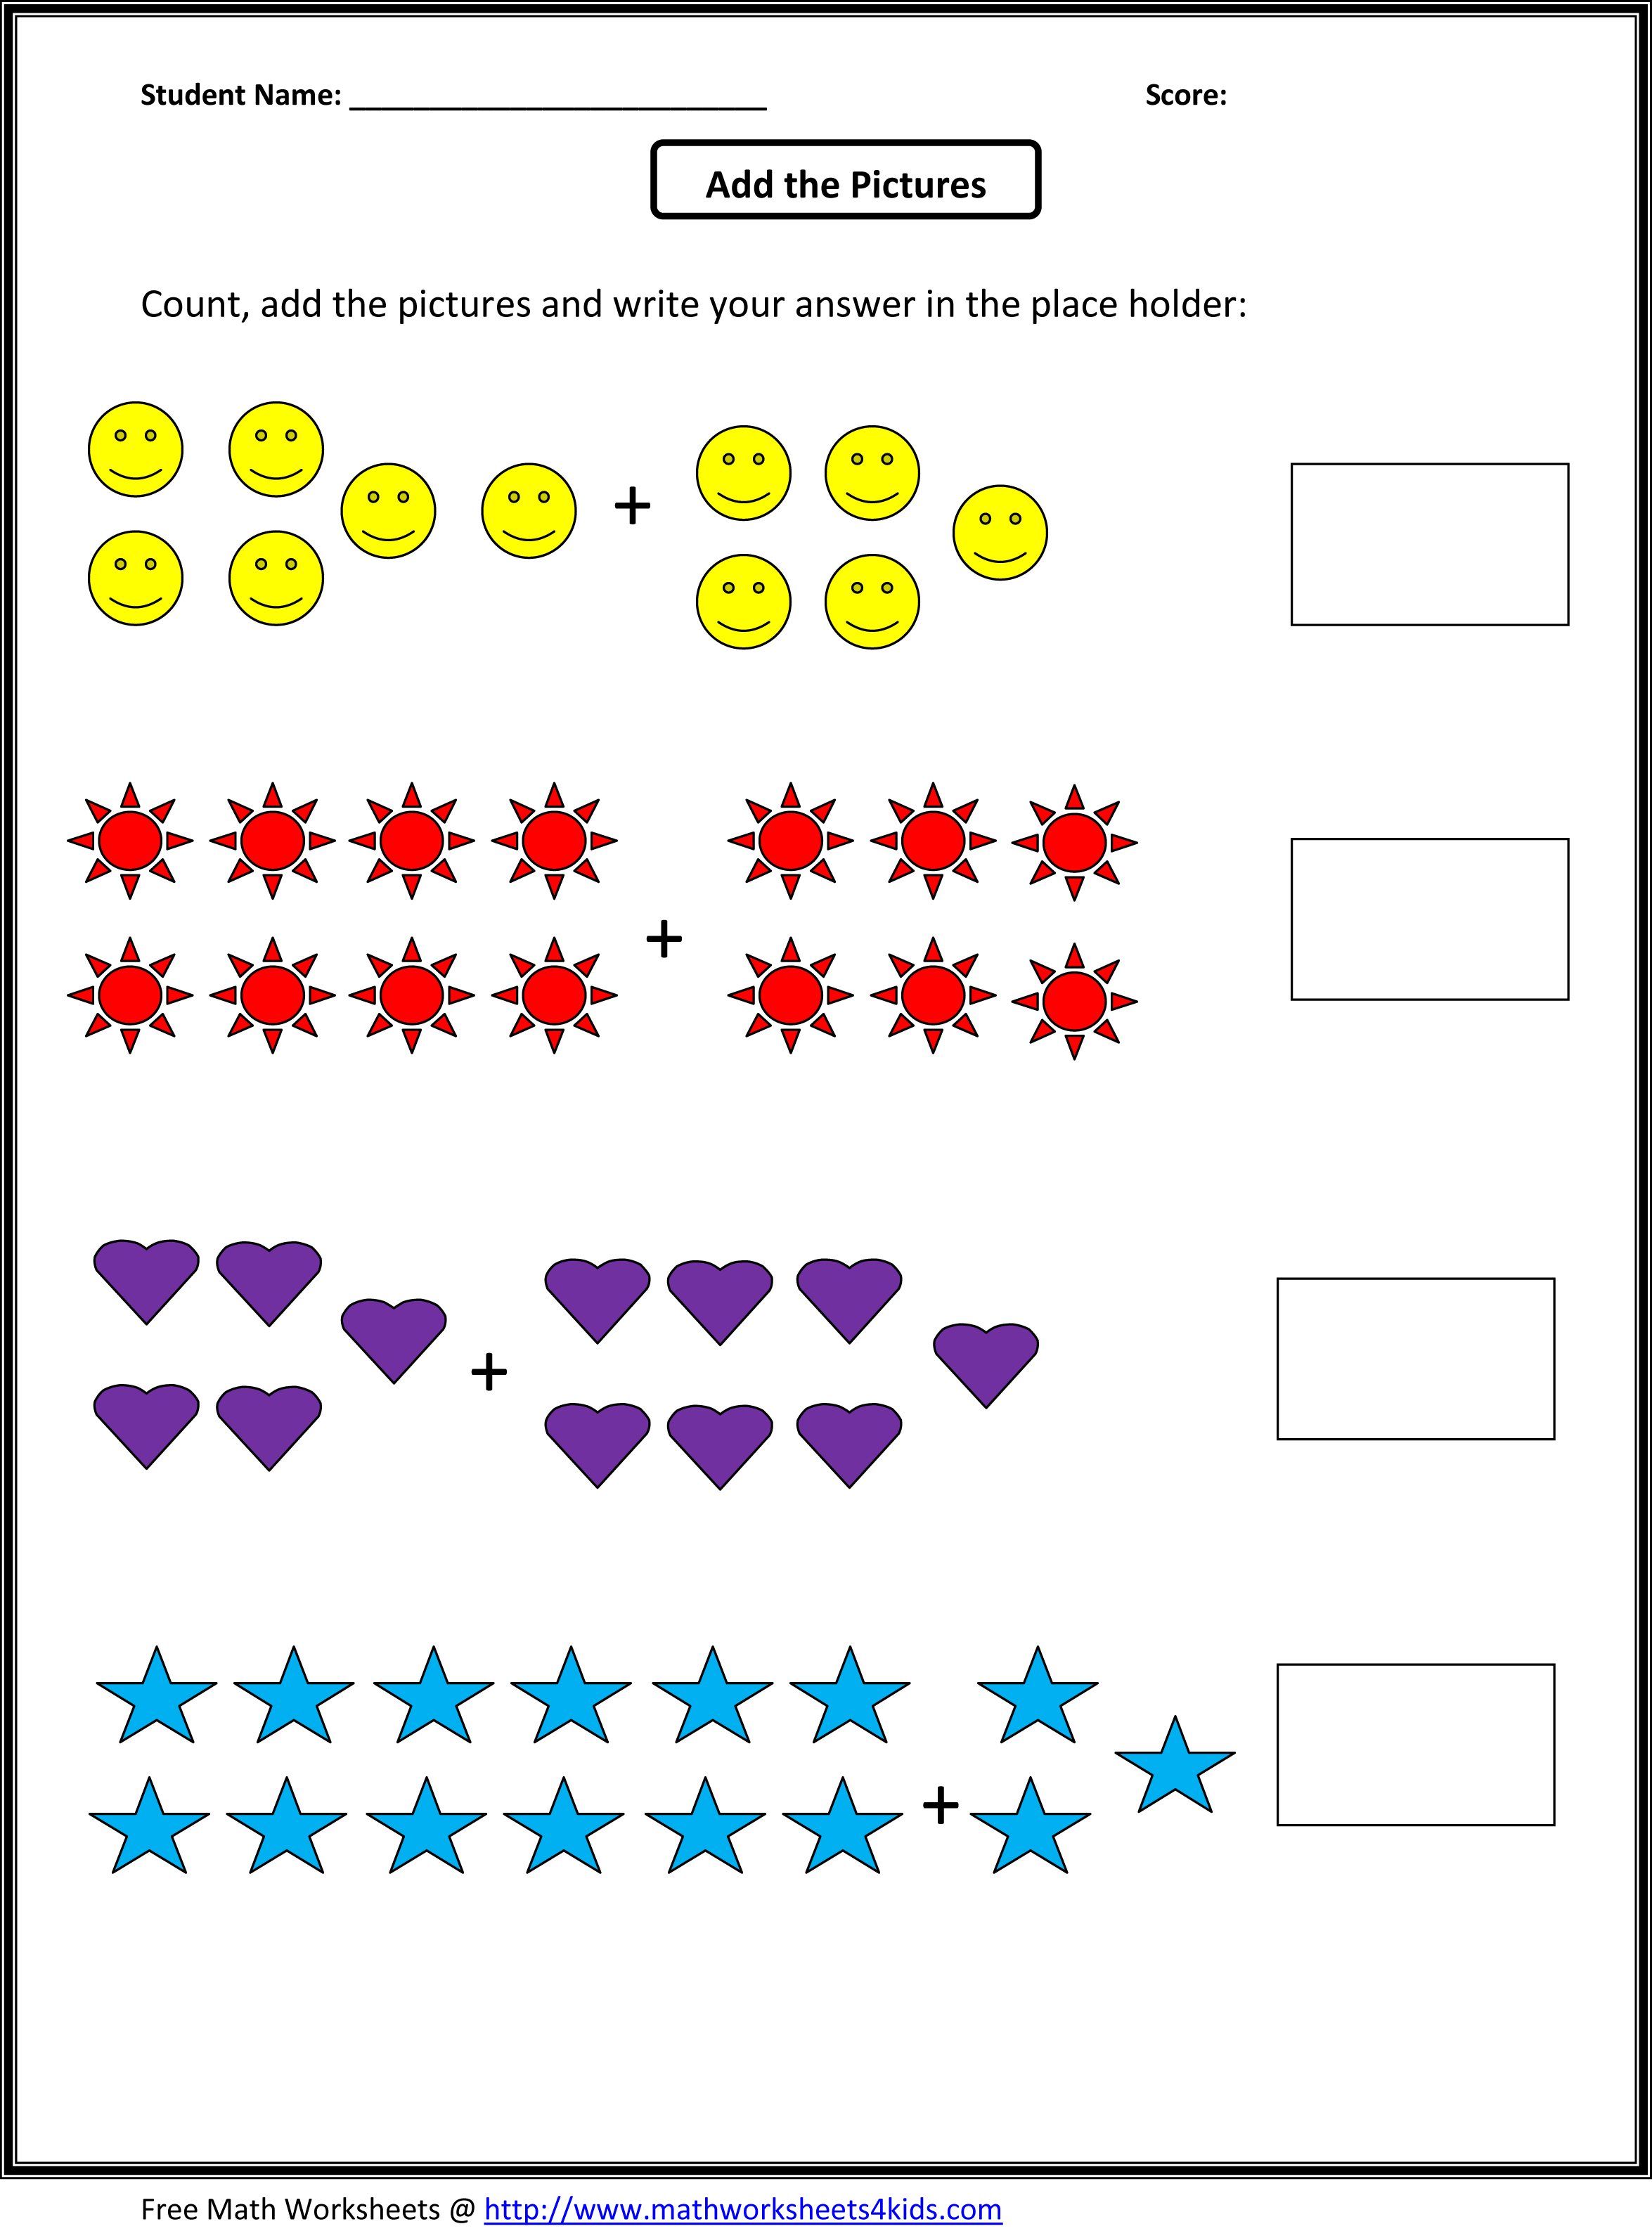 Weirdmailus  Mesmerizing Grade  Maths Worksheet  Reocurent With Licious Math Worksheets For St Grade Free  Reocurent With Cool Worksheet On Genetics Also Long Division Worksheets Grade  In Addition Year  Maths Word Problems Worksheets And Maths Subtraction Worksheet As Well As Worksheets On Adding And Subtracting Decimals Additionally Math Measuring Worksheets From Reocurentcom With Weirdmailus  Licious Grade  Maths Worksheet  Reocurent With Cool Math Worksheets For St Grade Free  Reocurent And Mesmerizing Worksheet On Genetics Also Long Division Worksheets Grade  In Addition Year  Maths Word Problems Worksheets From Reocurentcom